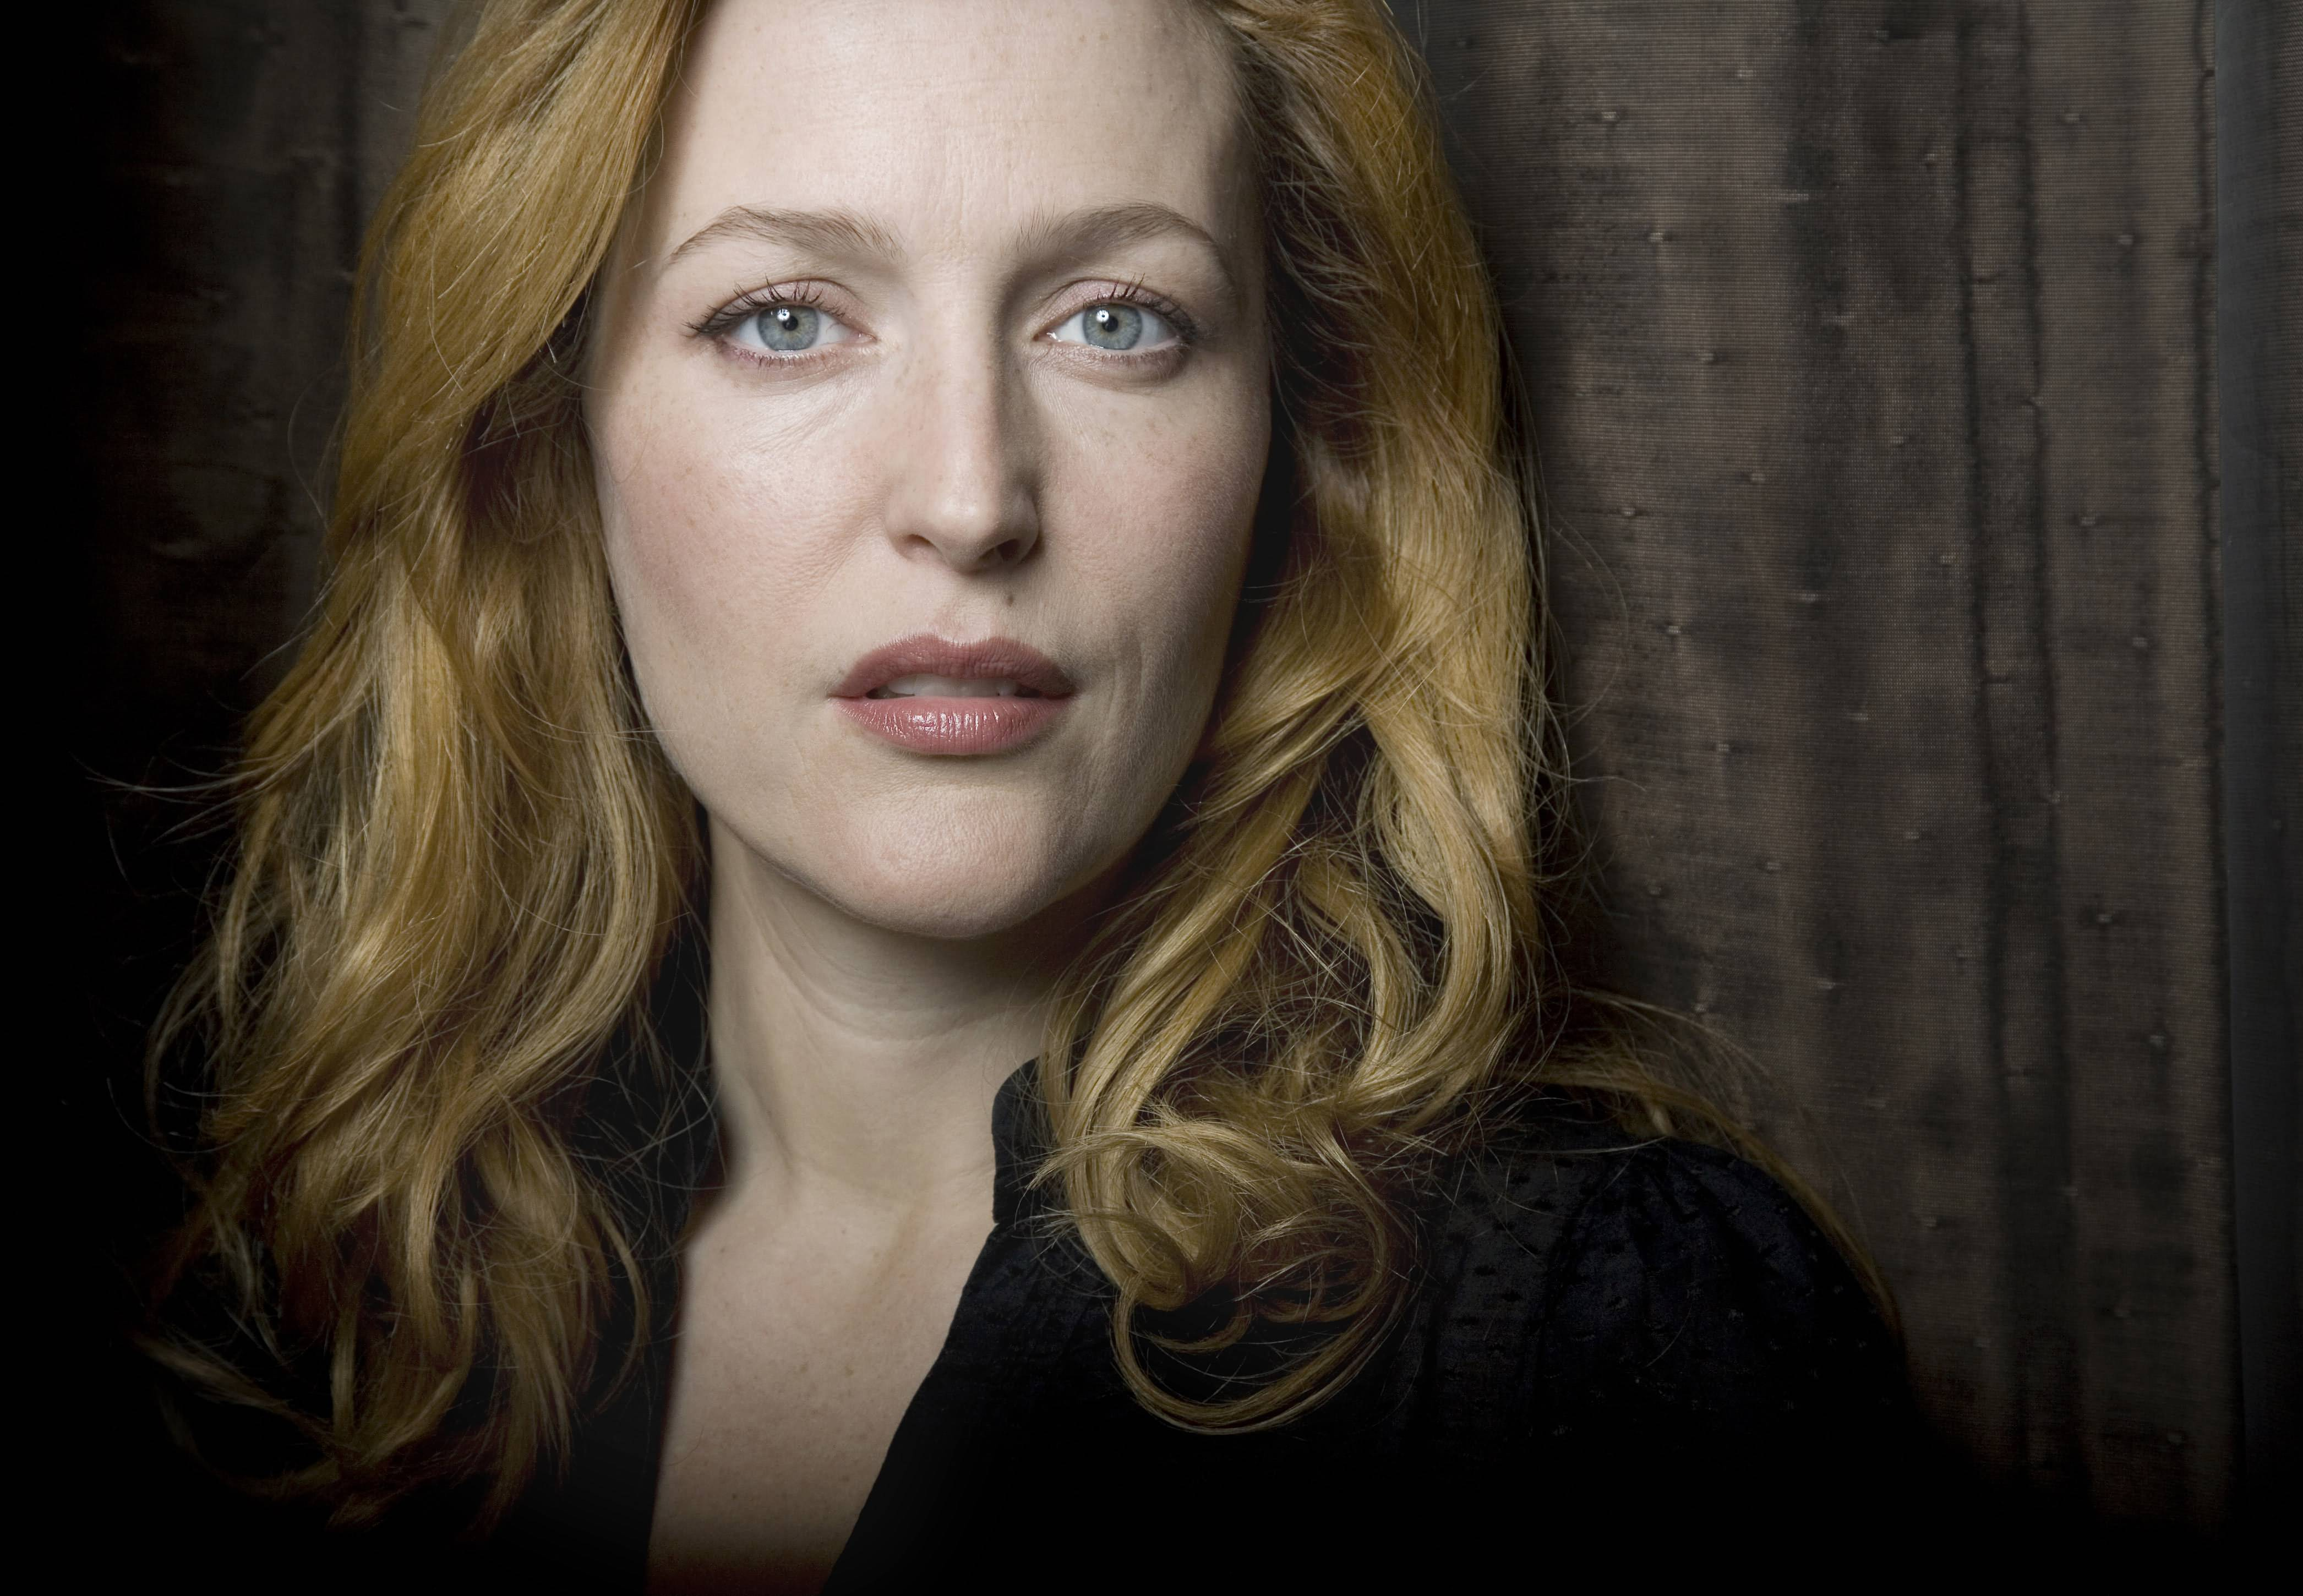 4184x2900 - Gillian Anderson Wallpapers 26